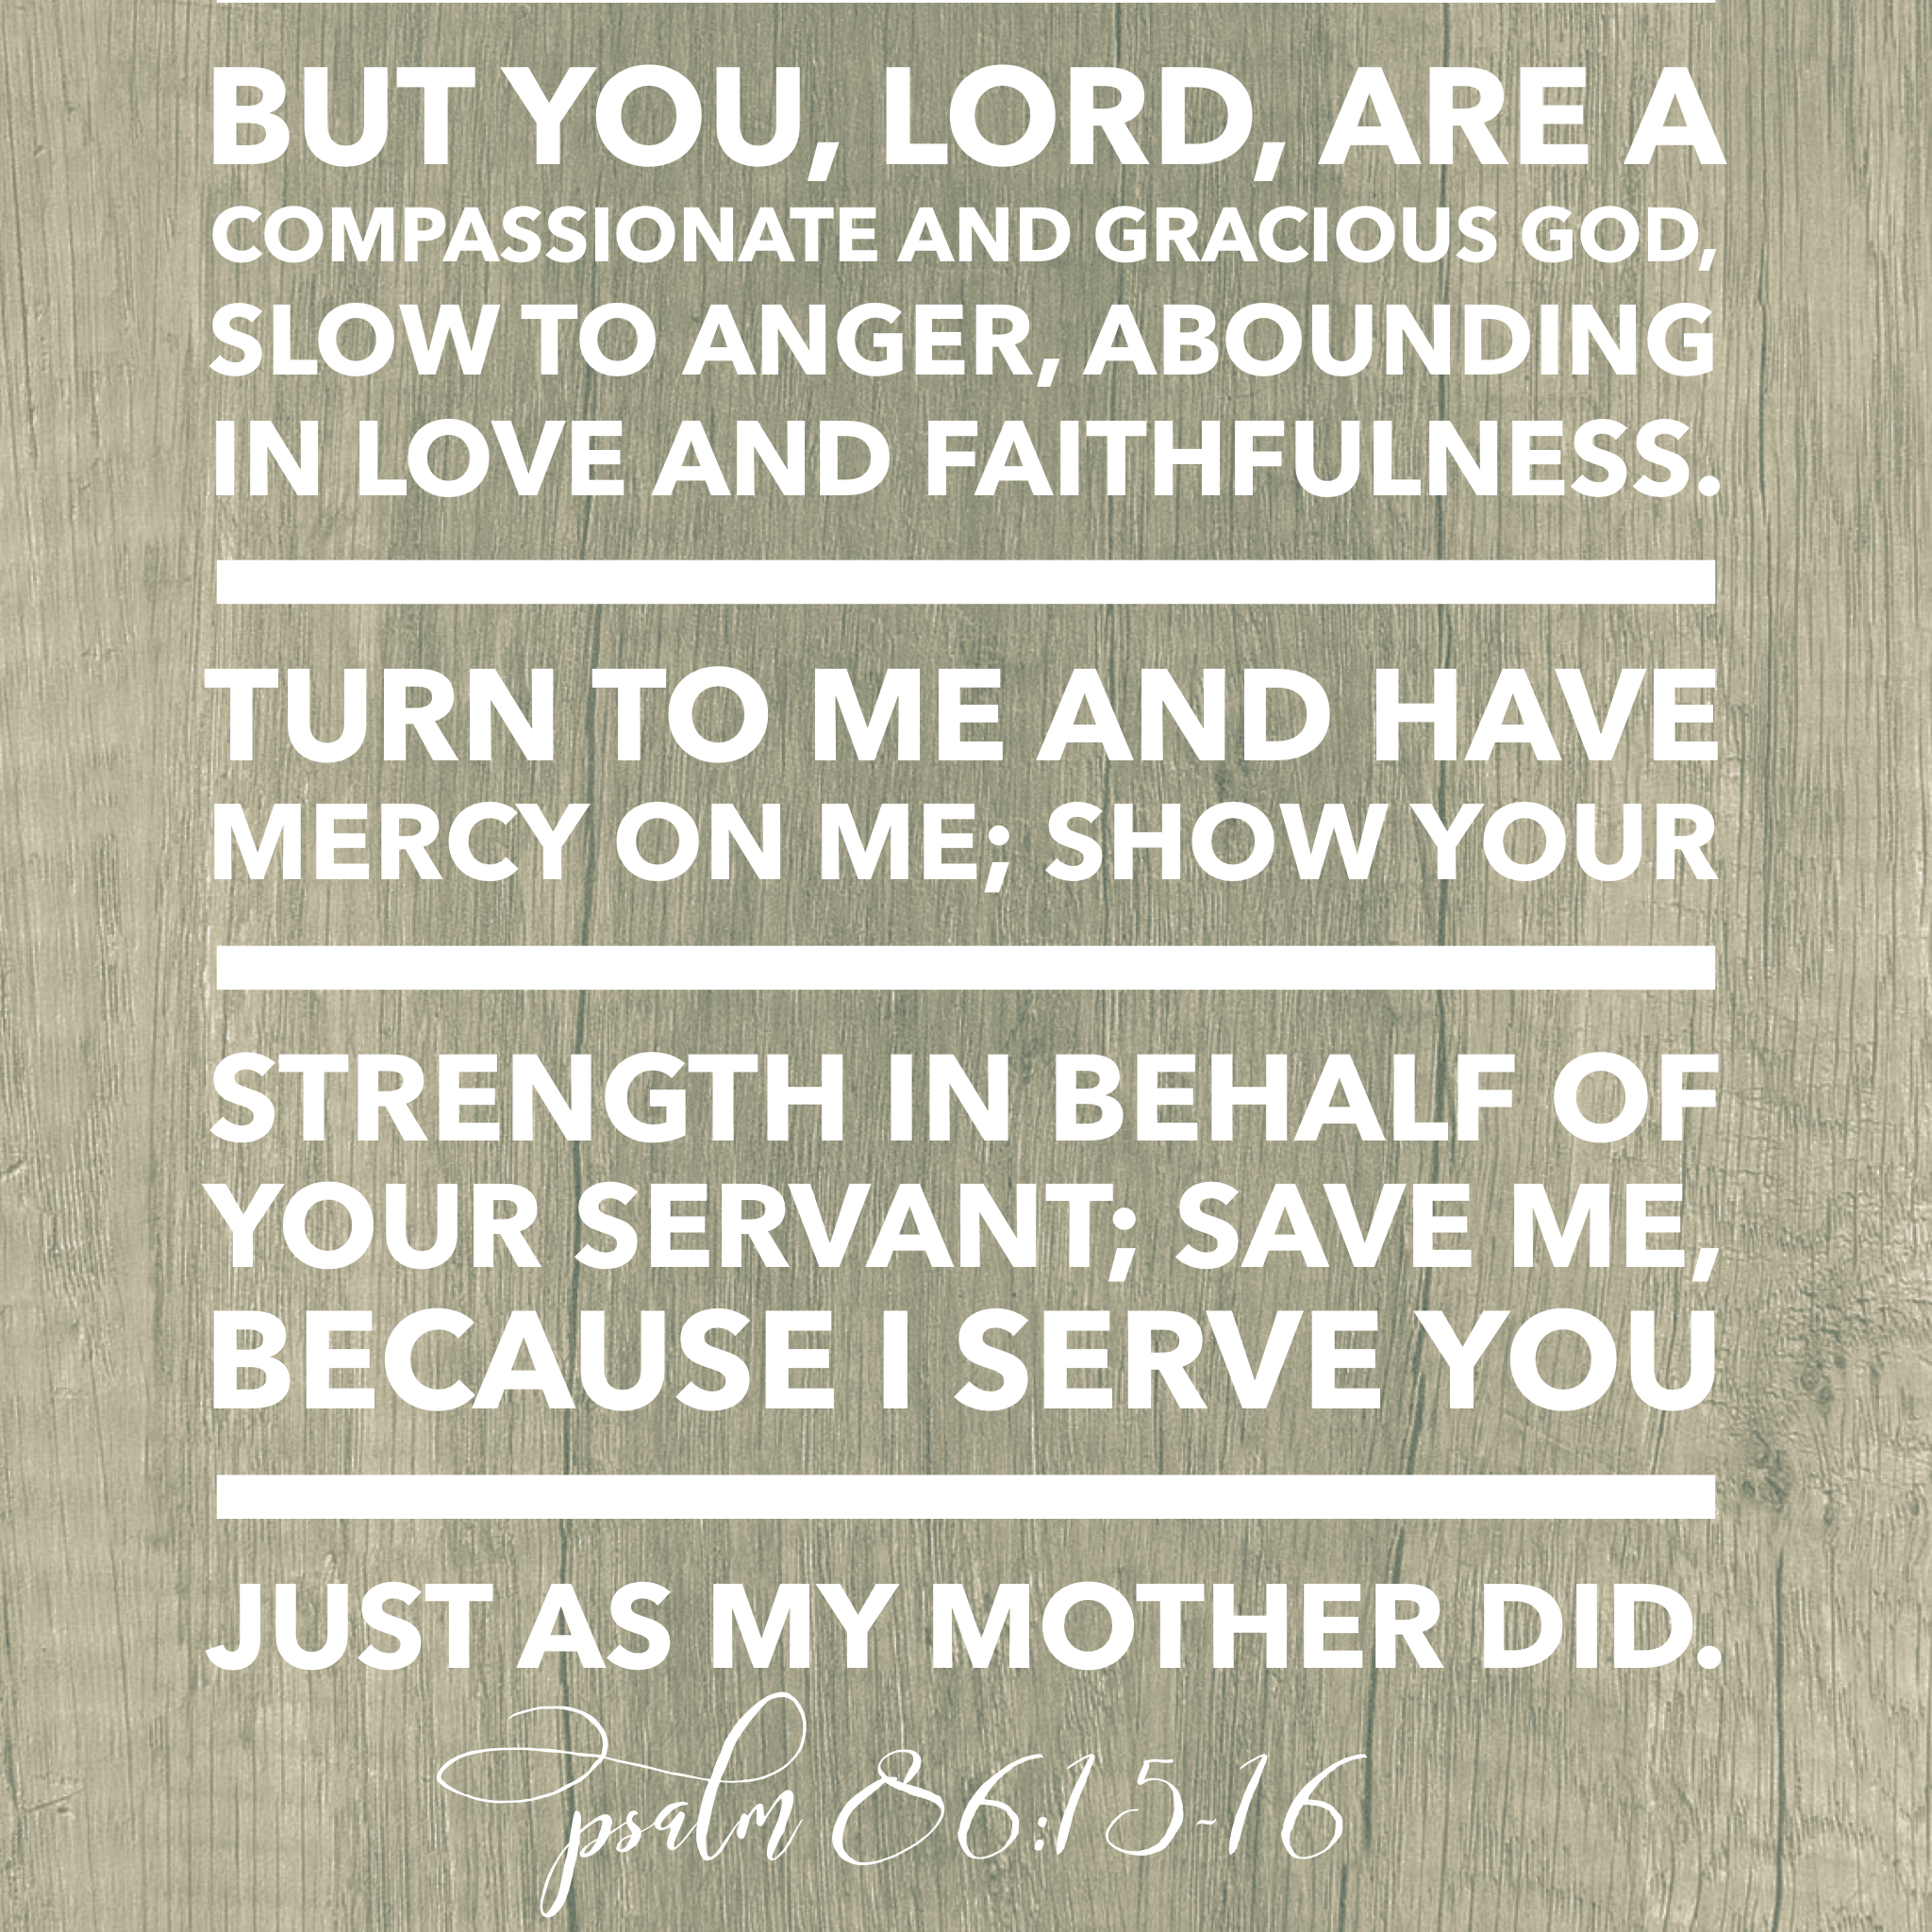 But You, Lord, are a compassionate and gracious God, slow to anger, abounding in love and faithfulness.  Turn to me and have mercy on me; show your strenth in behalf of your servant; save me, because I serve you just as my mother did. Psalm 86:15-16